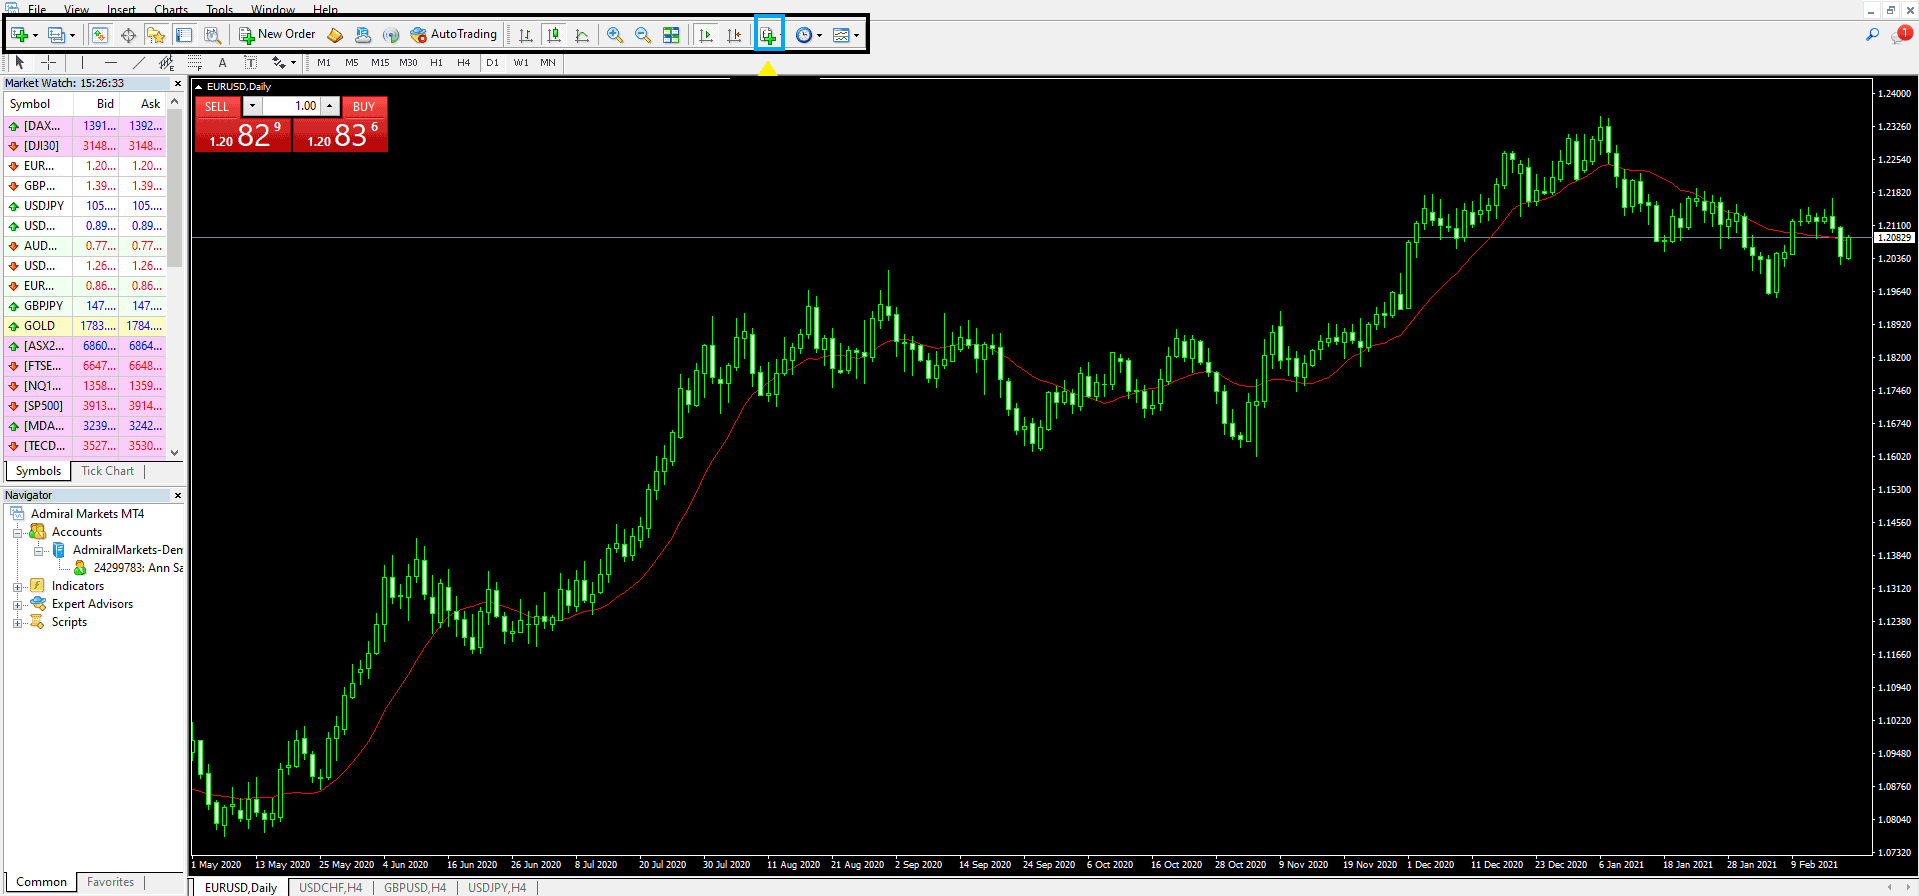 Adding moving average to mt4